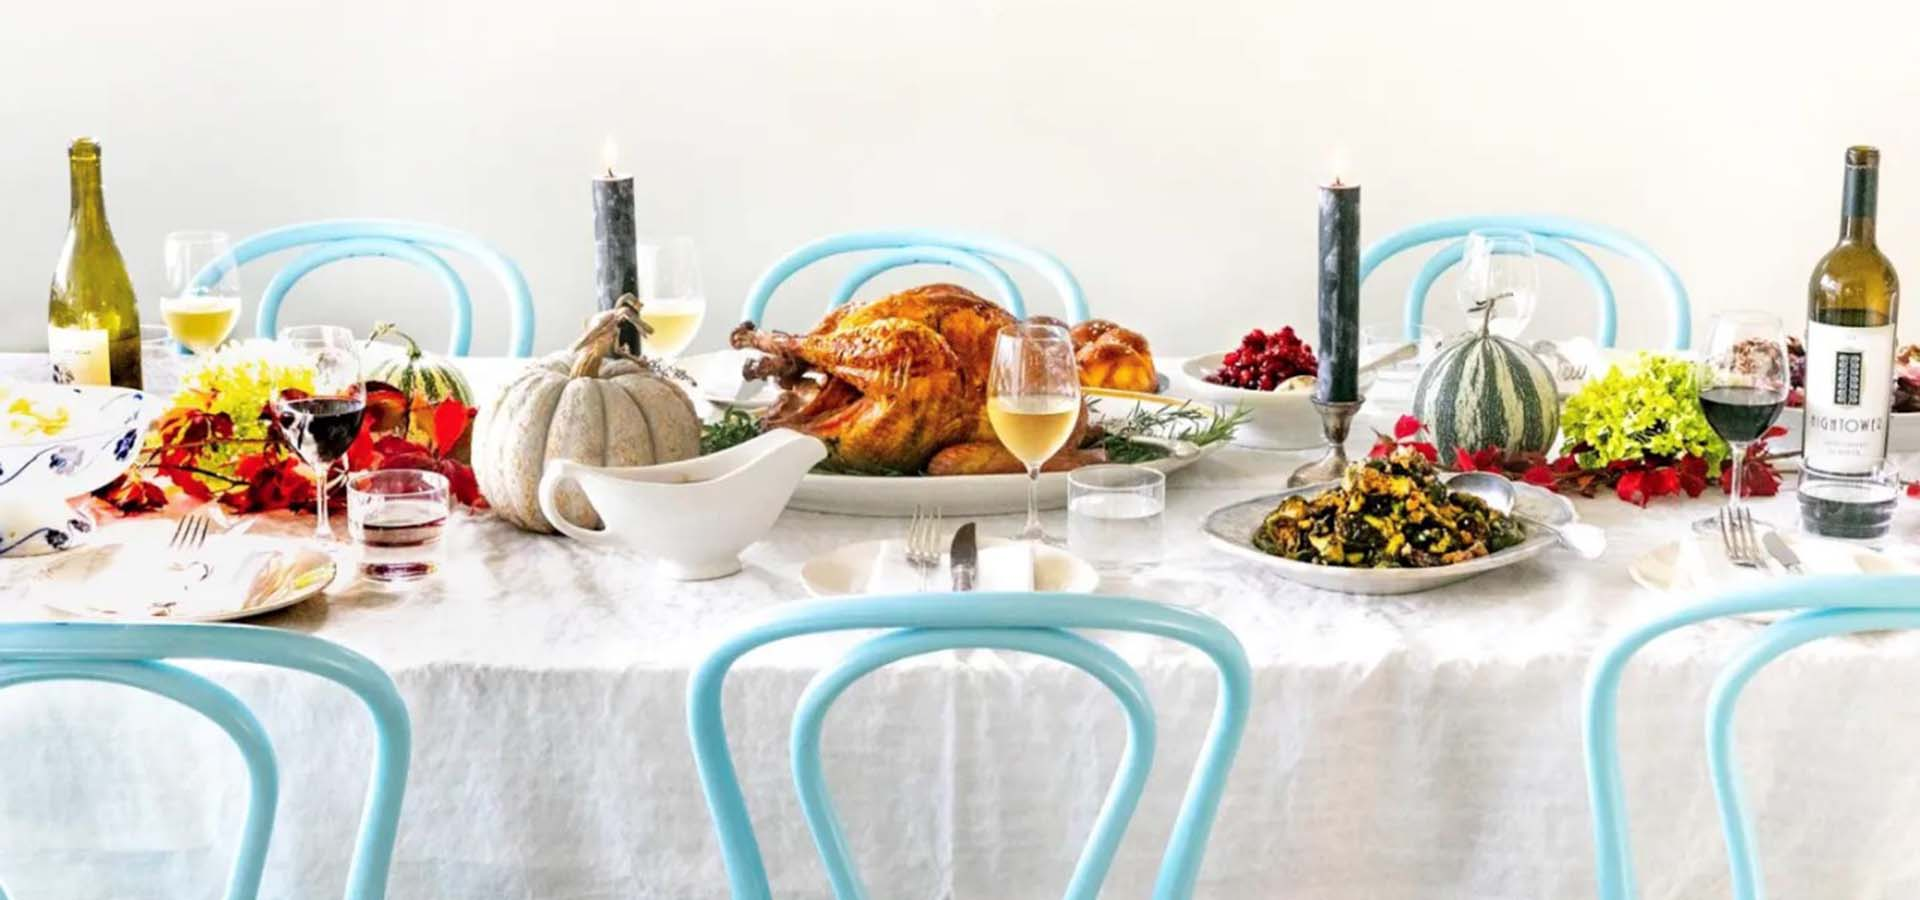 Thanksgiving table with turkey, sides, on a white table cloth.